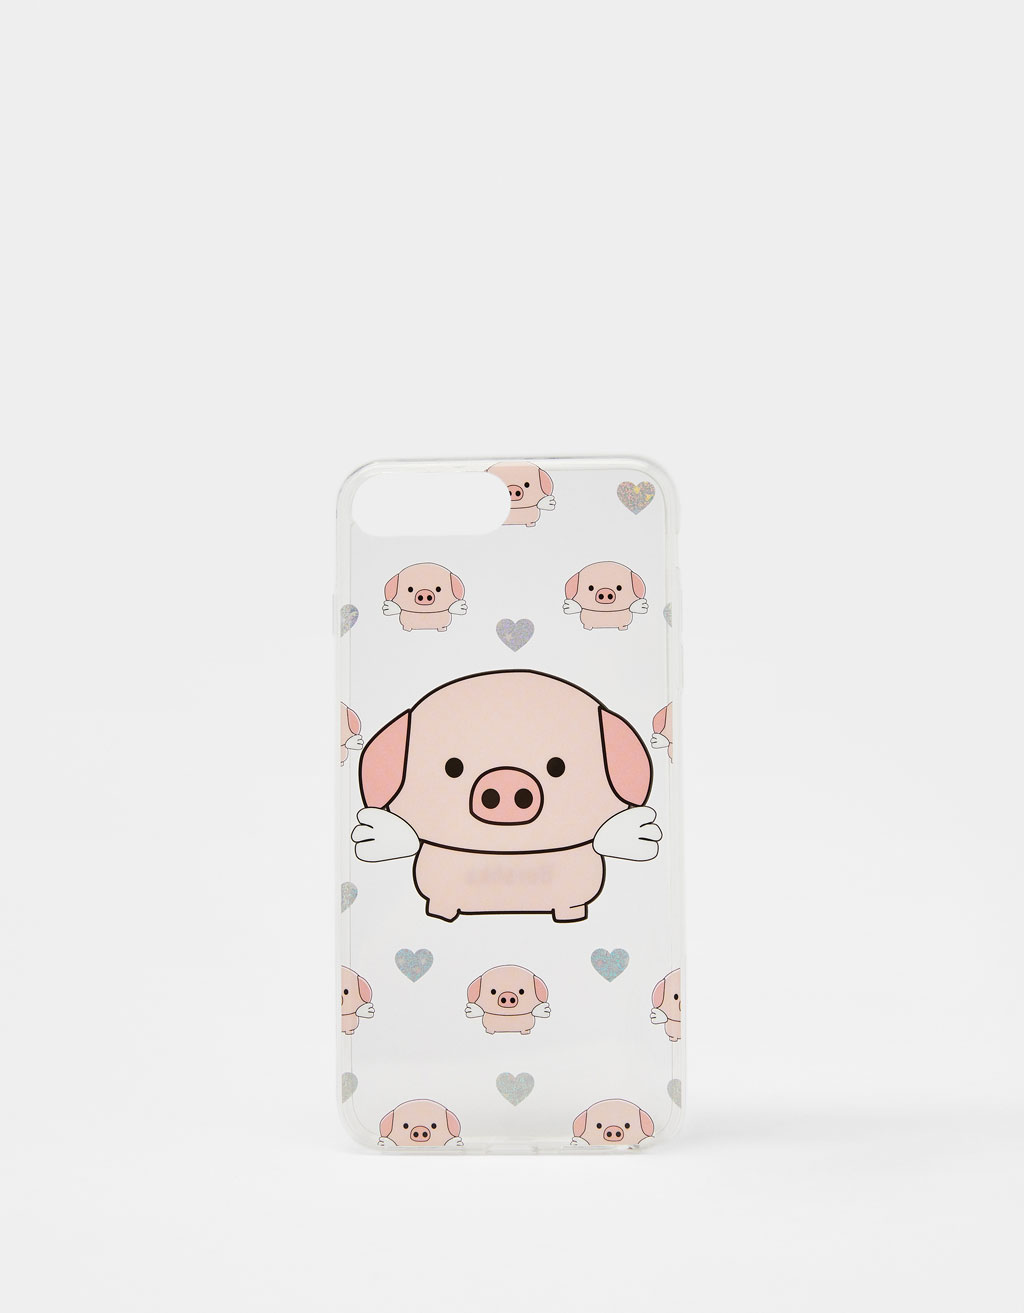 Coque Little Pig iPhone 6 plus / 7 plus / 8 plus